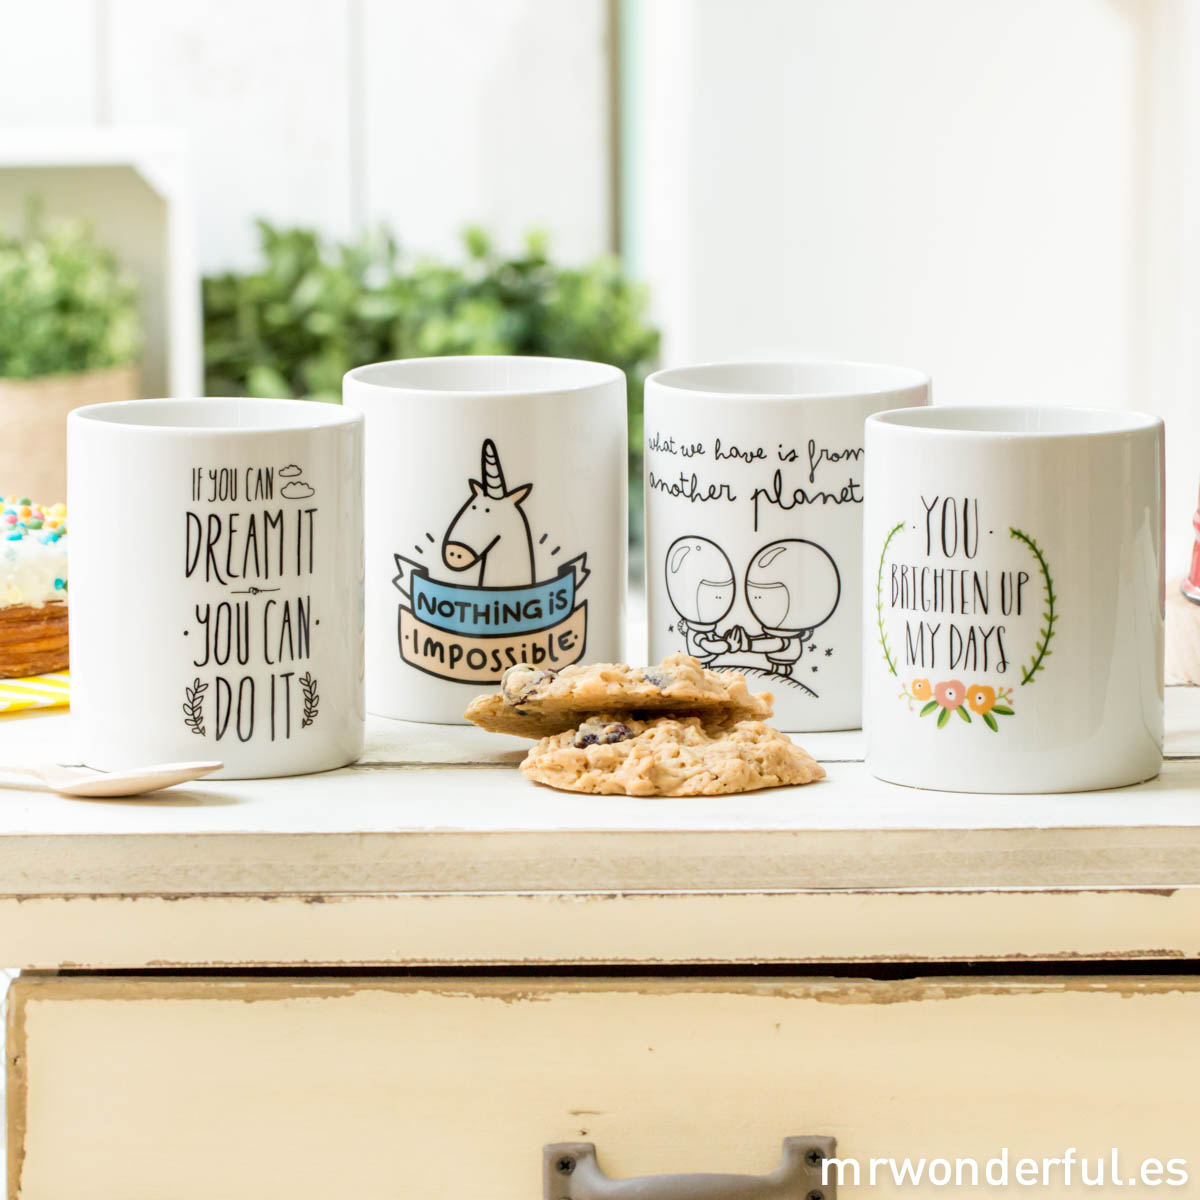 Conjunto_tazas_mrwonderful_English_01042014-10-2